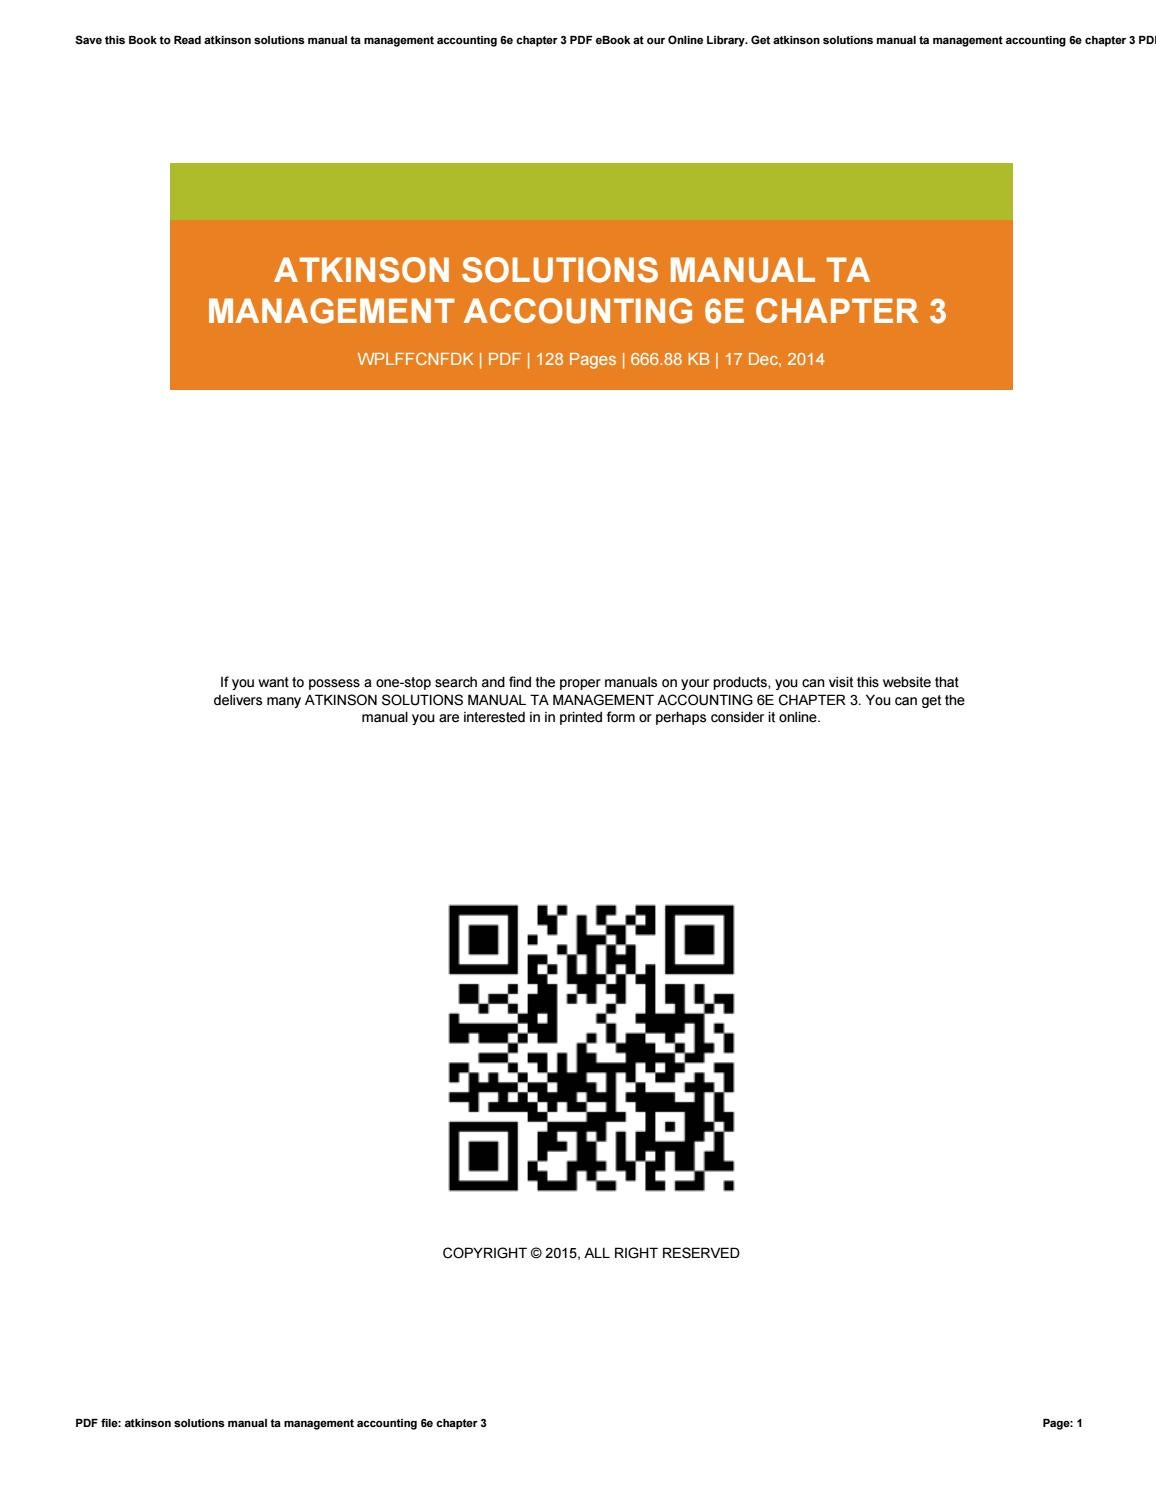 Atkinson solutions manual ta management accounting 6e chapter 3 by  pinky64sweet - issuu